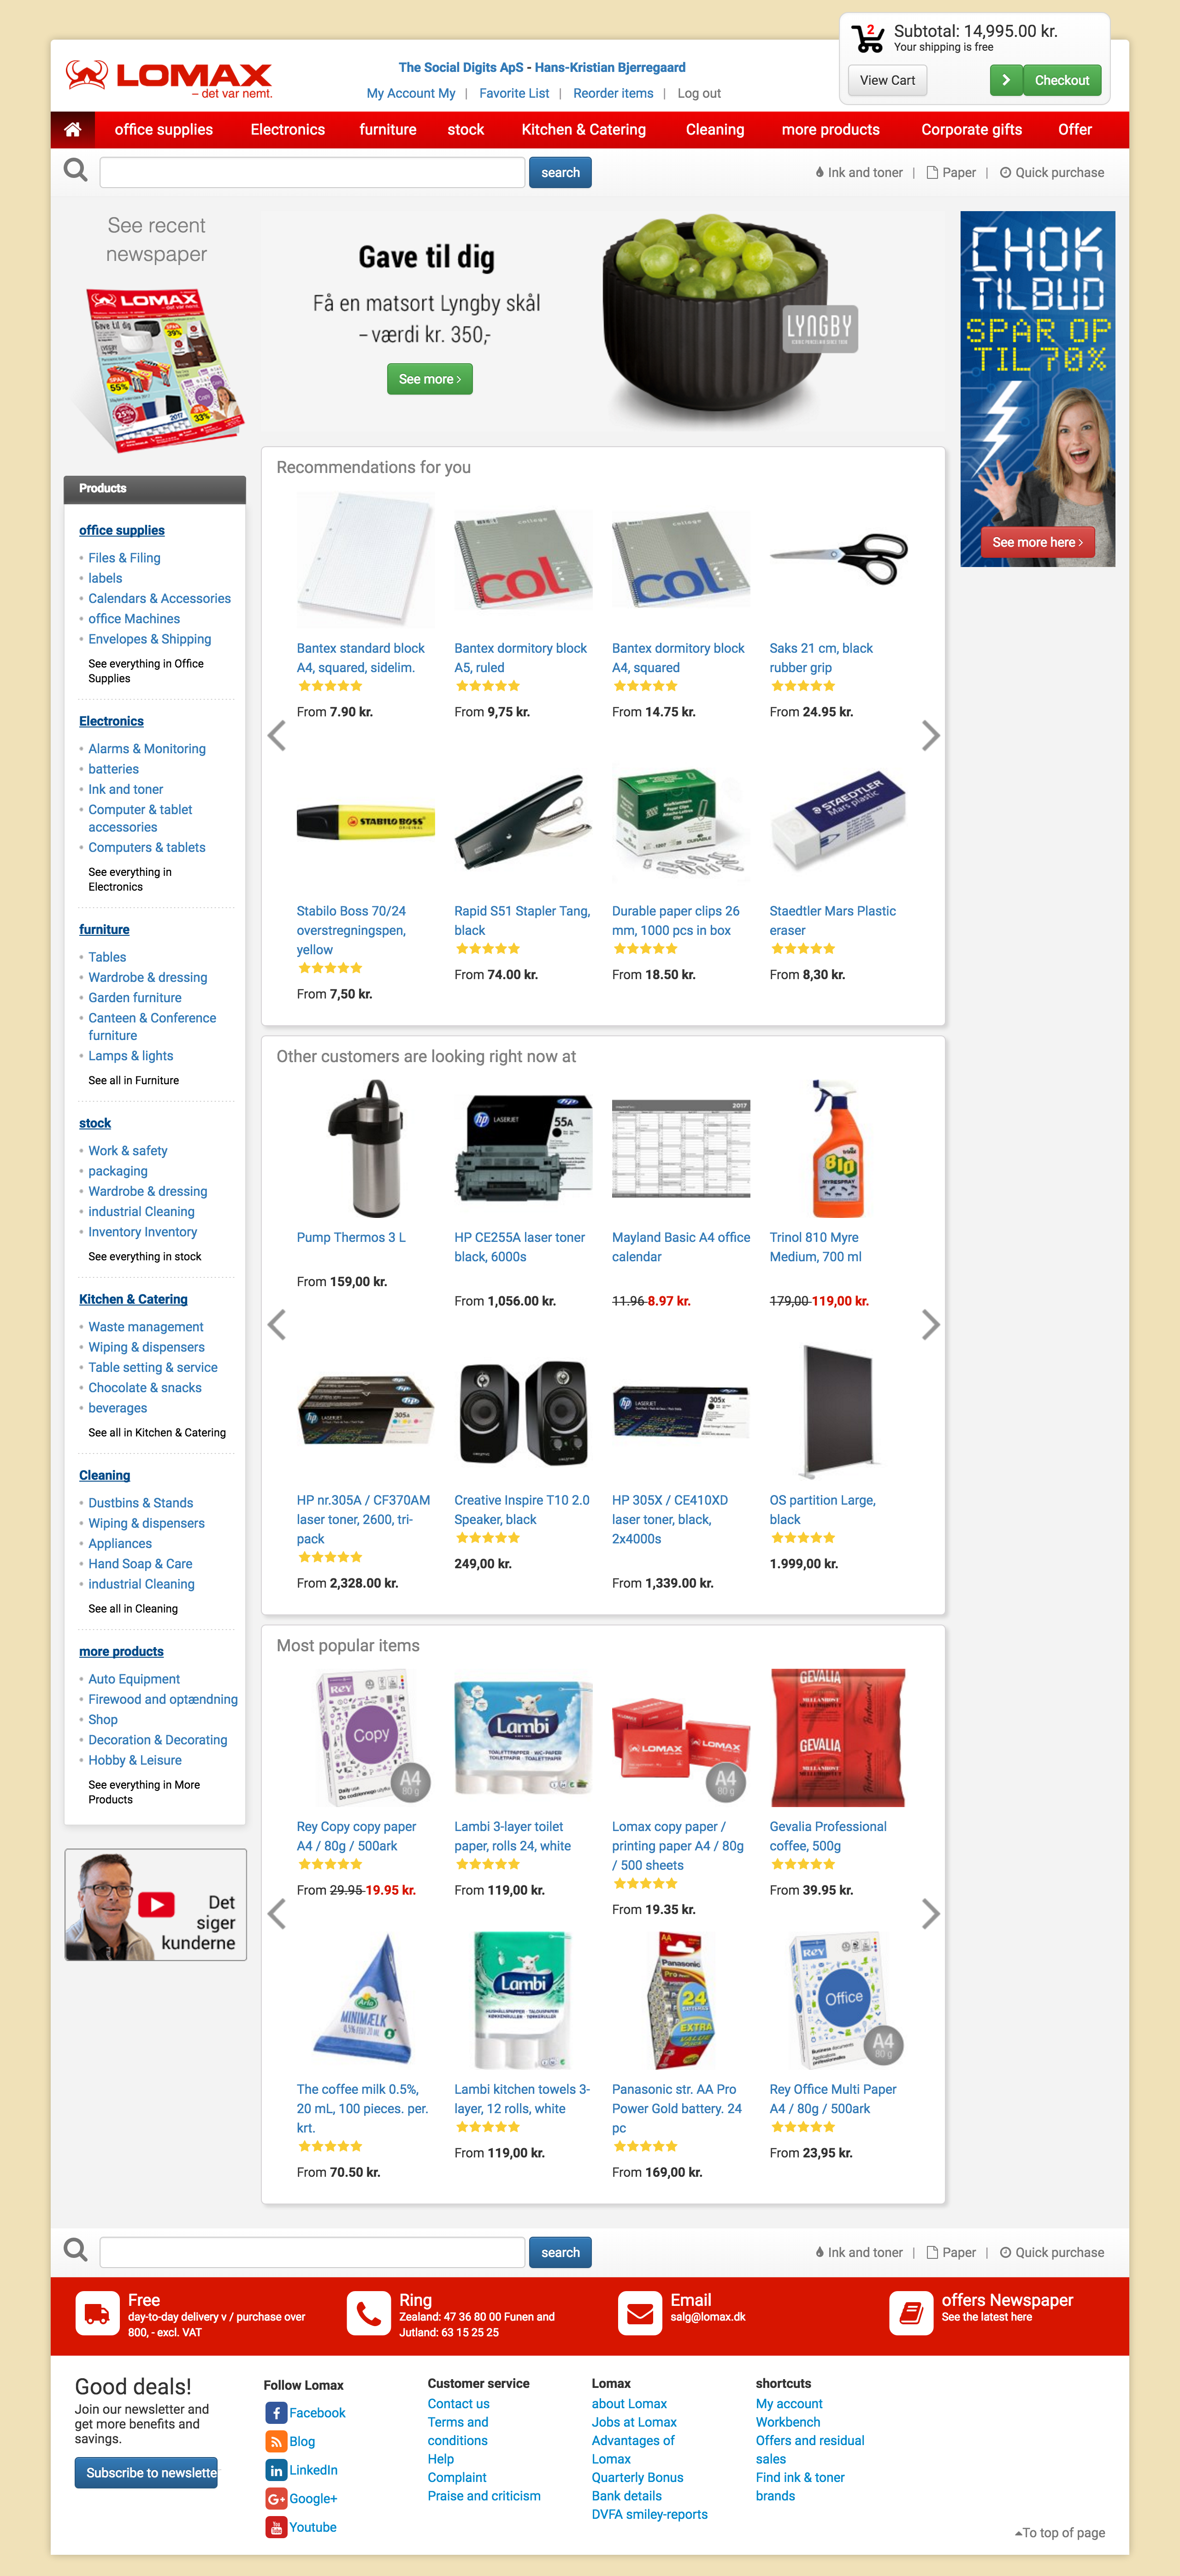 Lomax frontpage with personal recommendations, other customers' activity stream and today's most popular products.